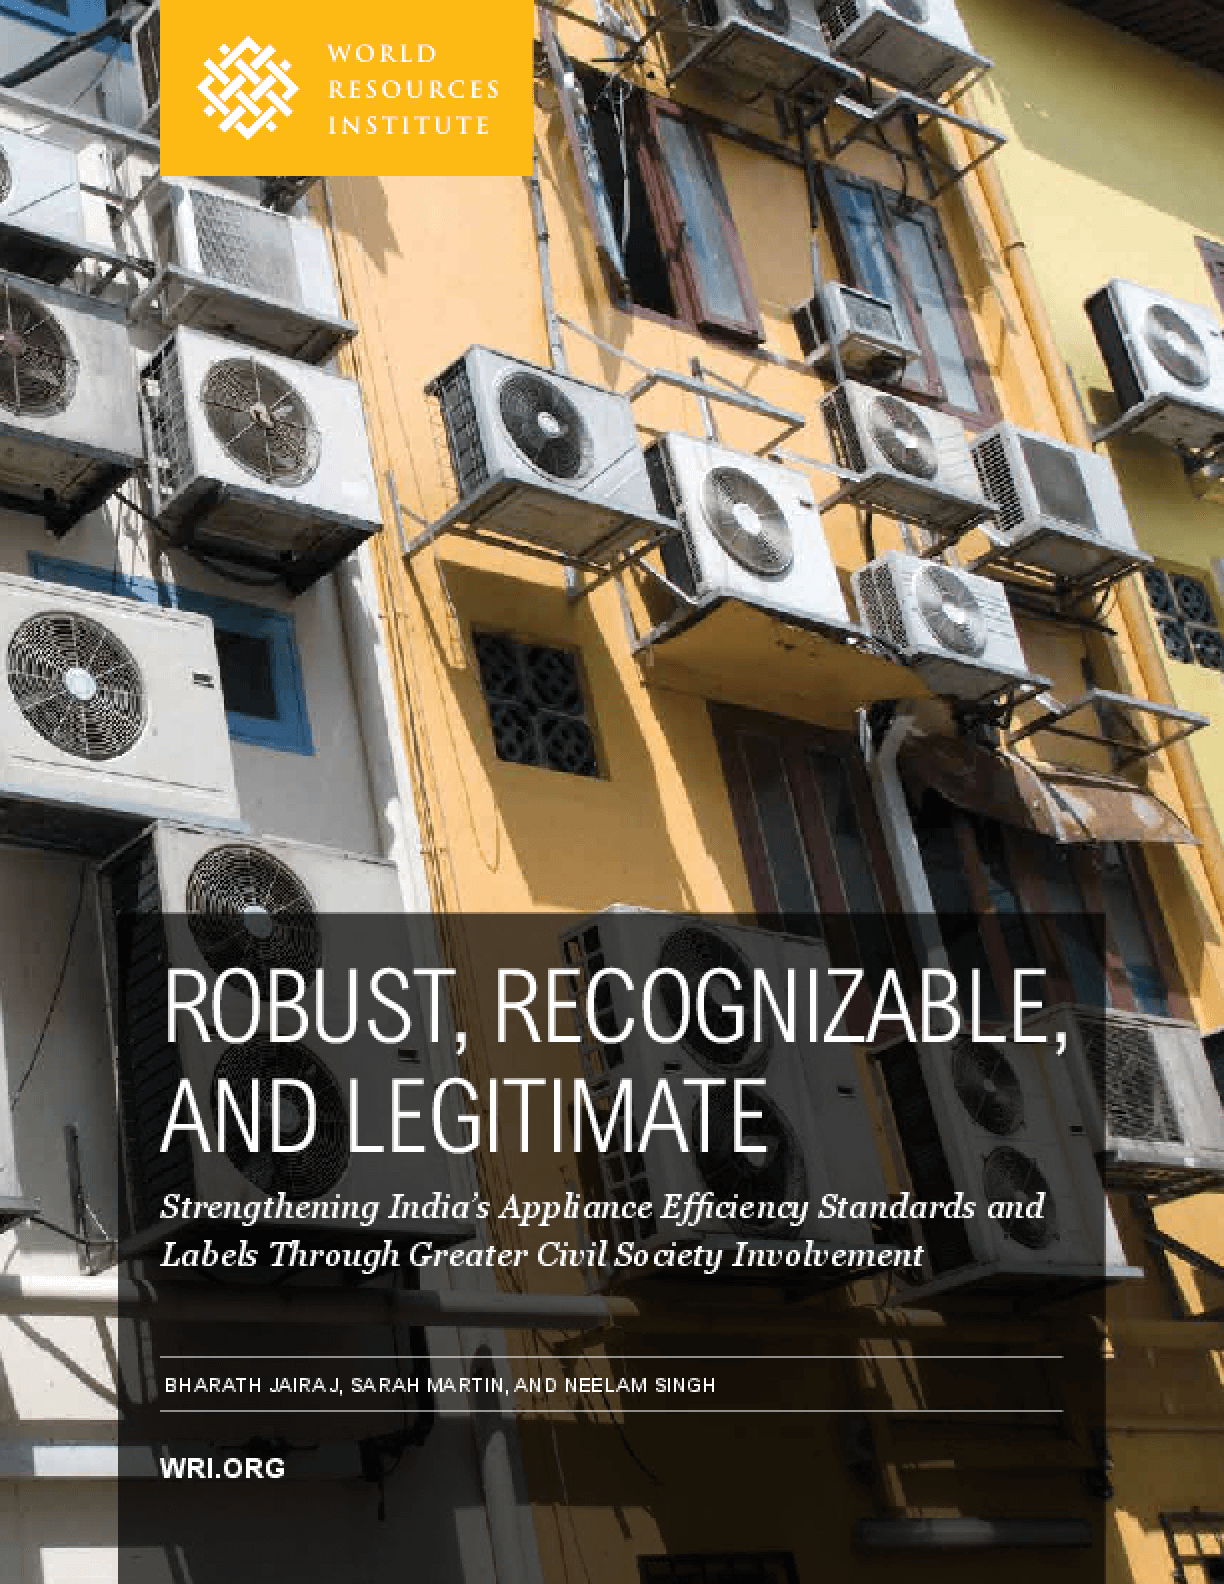 Robust, Recognizable and Legitimate: Strengthening India's Appliance Efficiency Standards and Labels Through Greater Civil Society Involvement